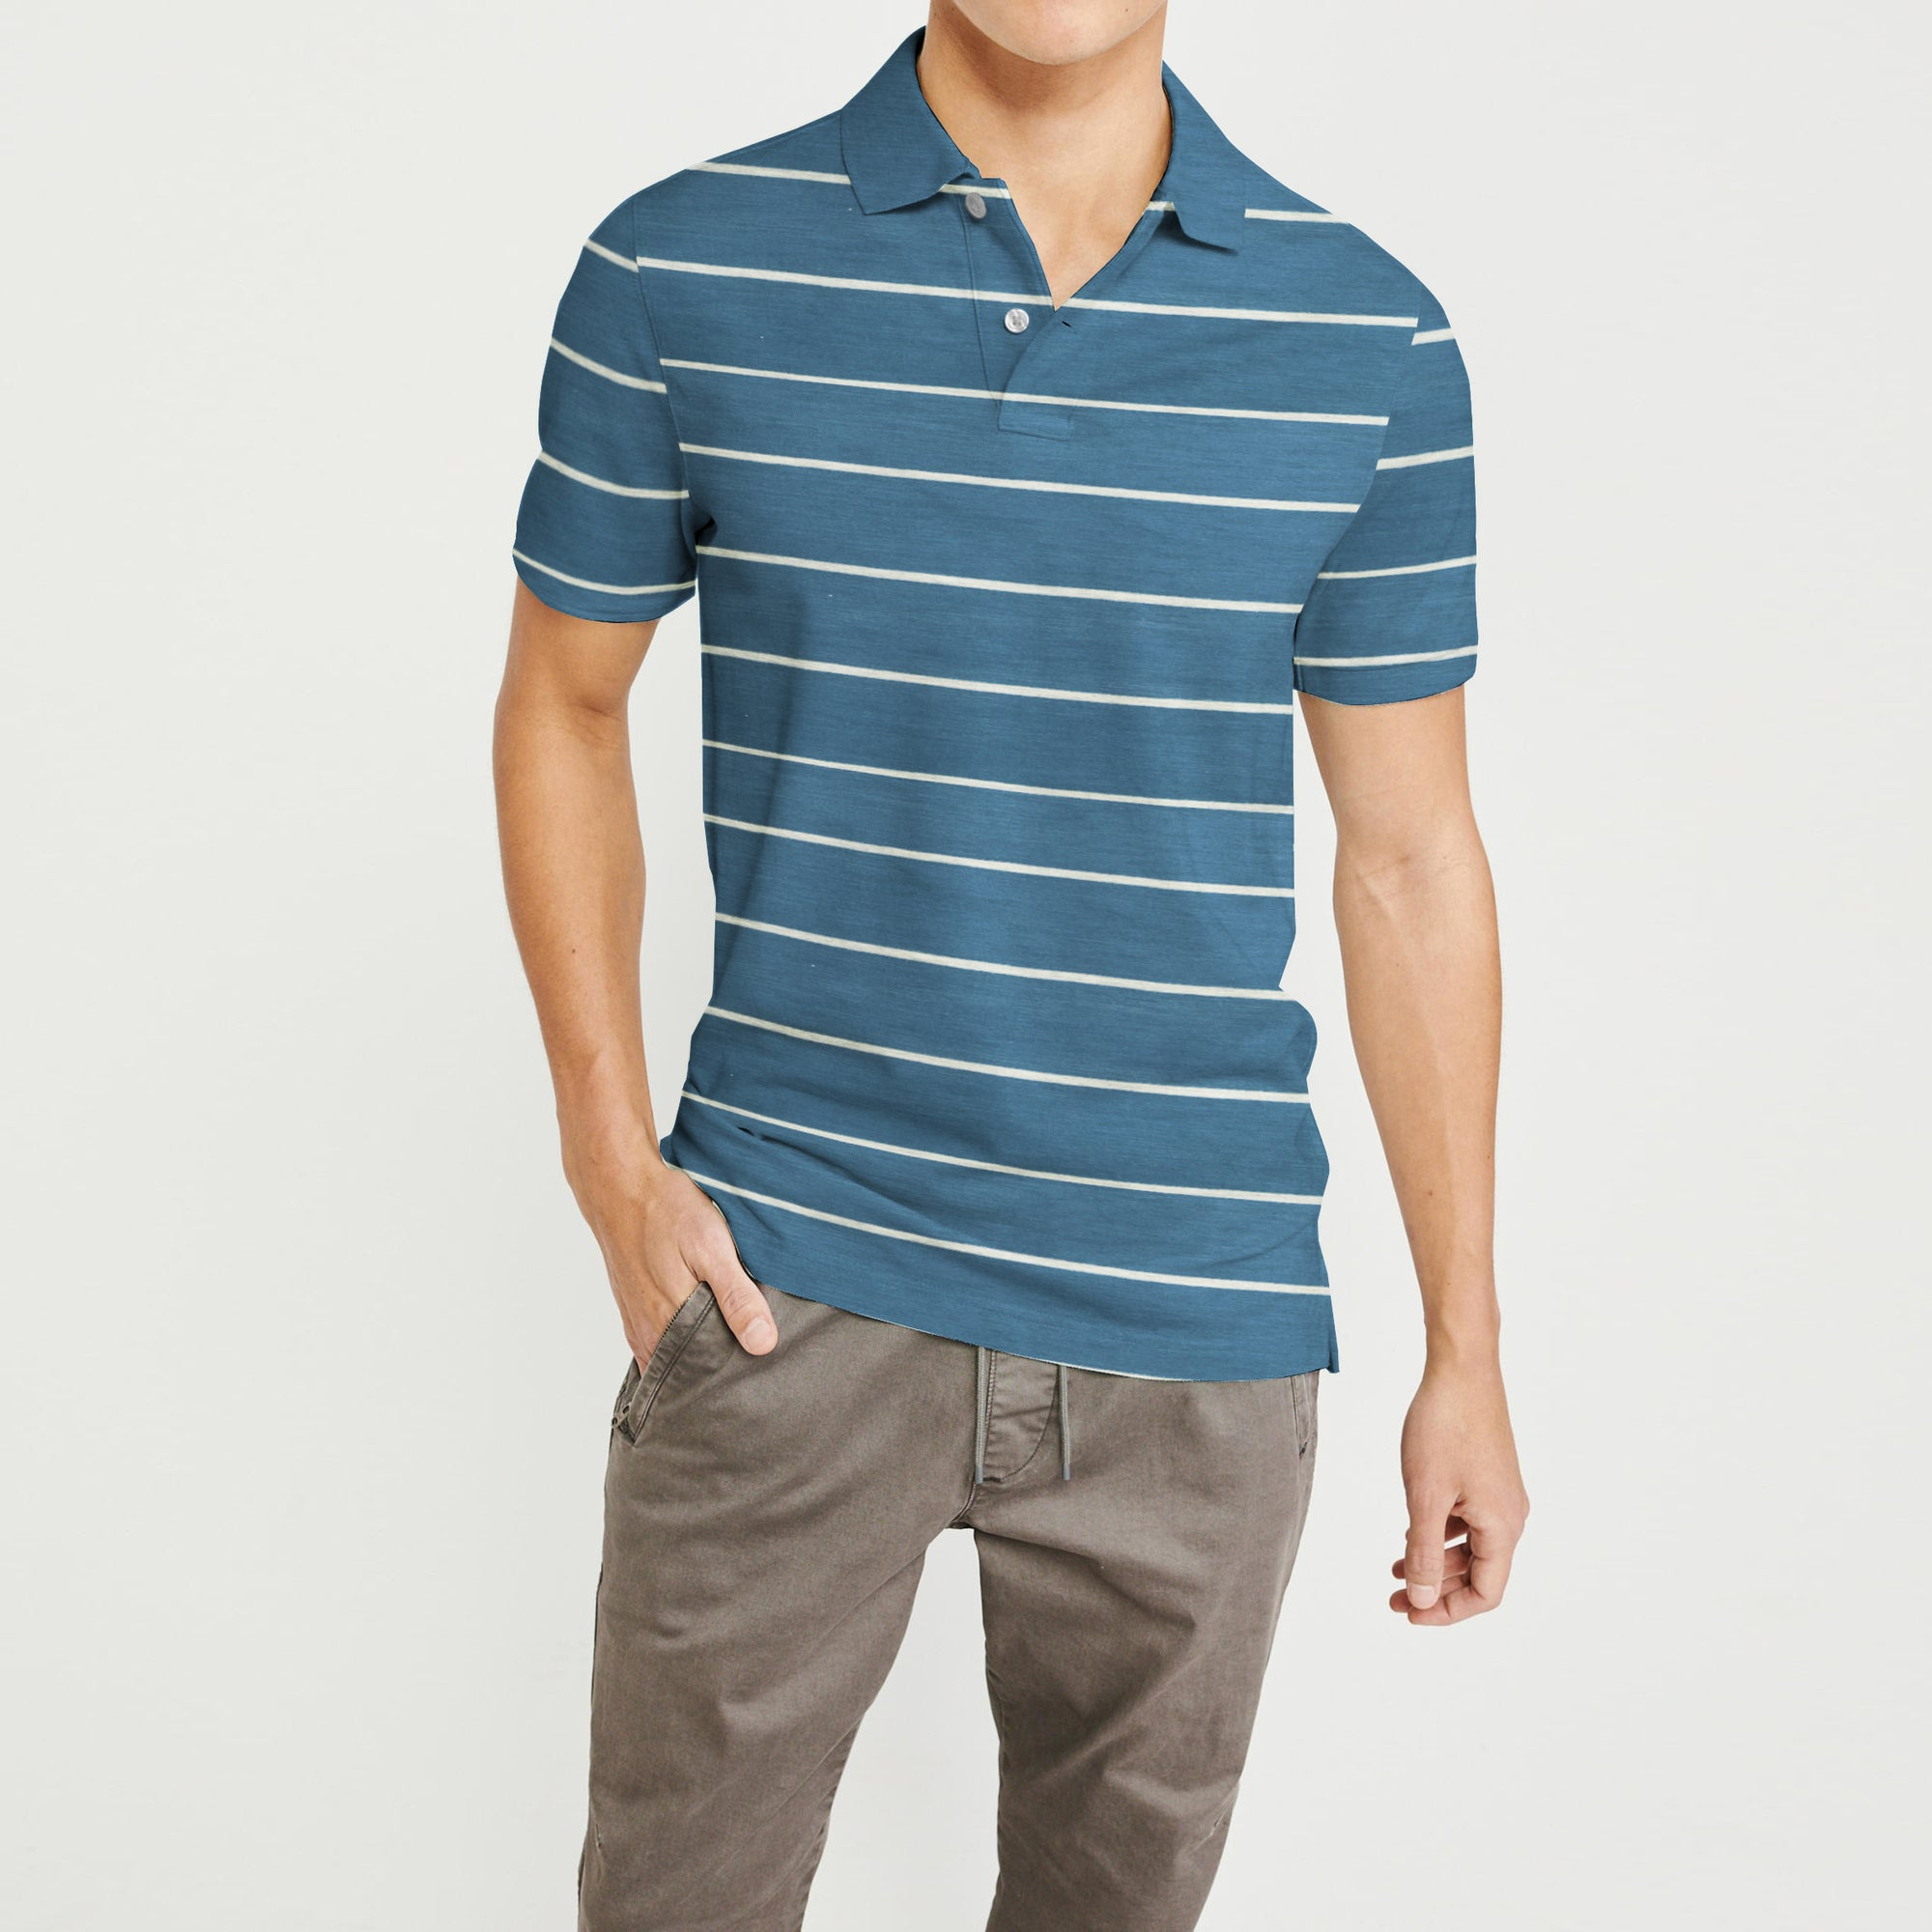 brandsego - Falls Creek Short Sleeve Single Jersey Polo Shirt For Men-Blue & Grey Striper-NA8436